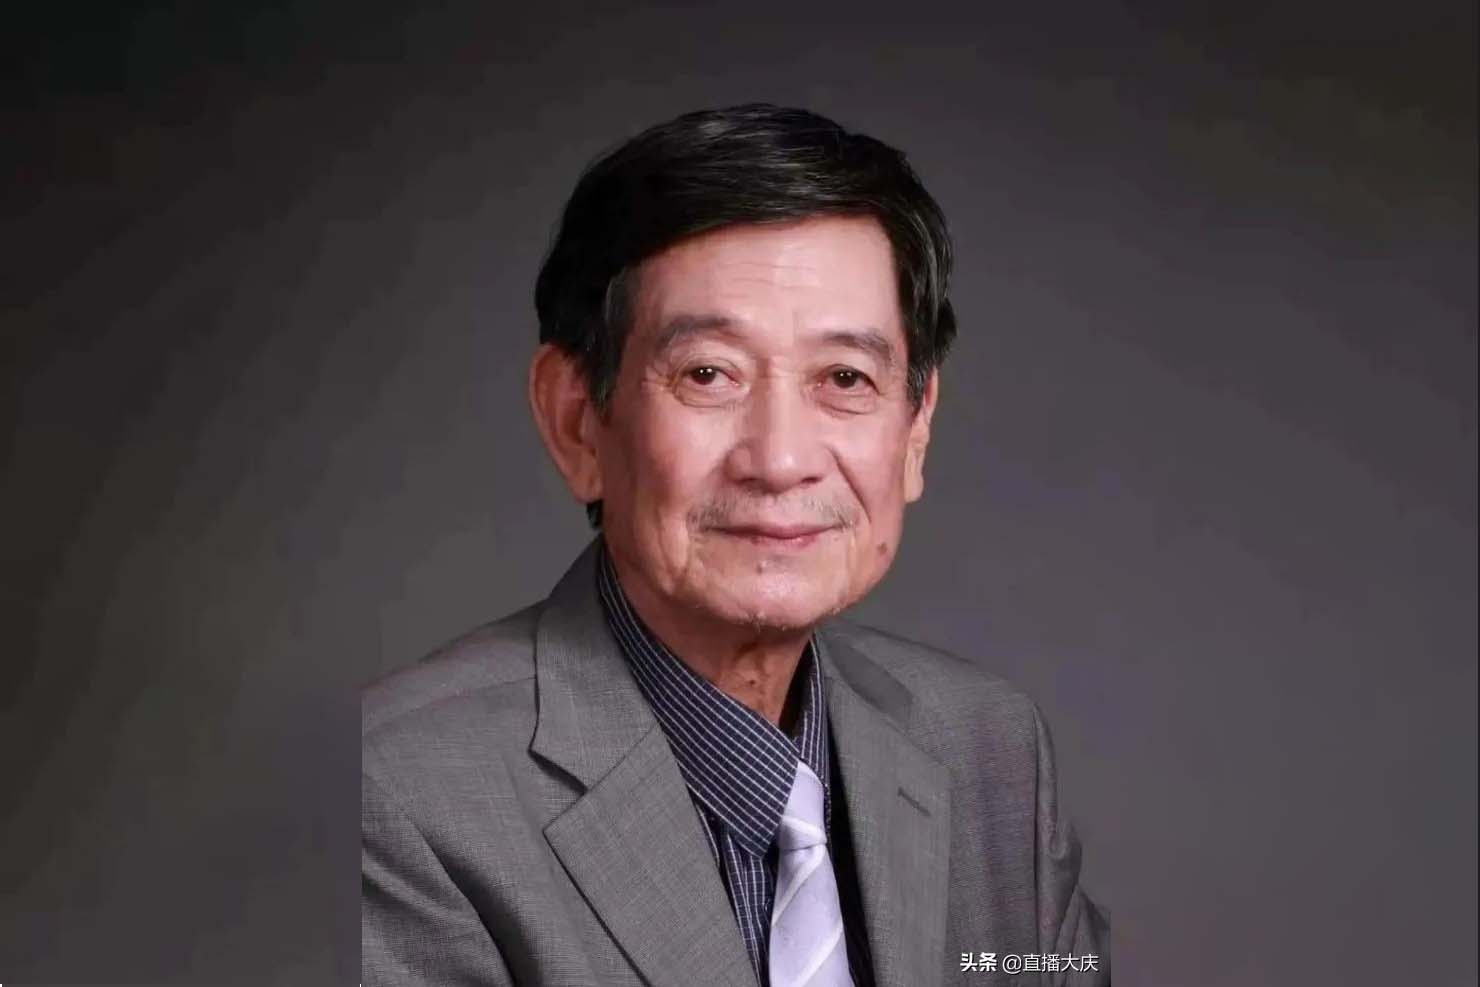 In Memory and Honor of the Father of IVF in China